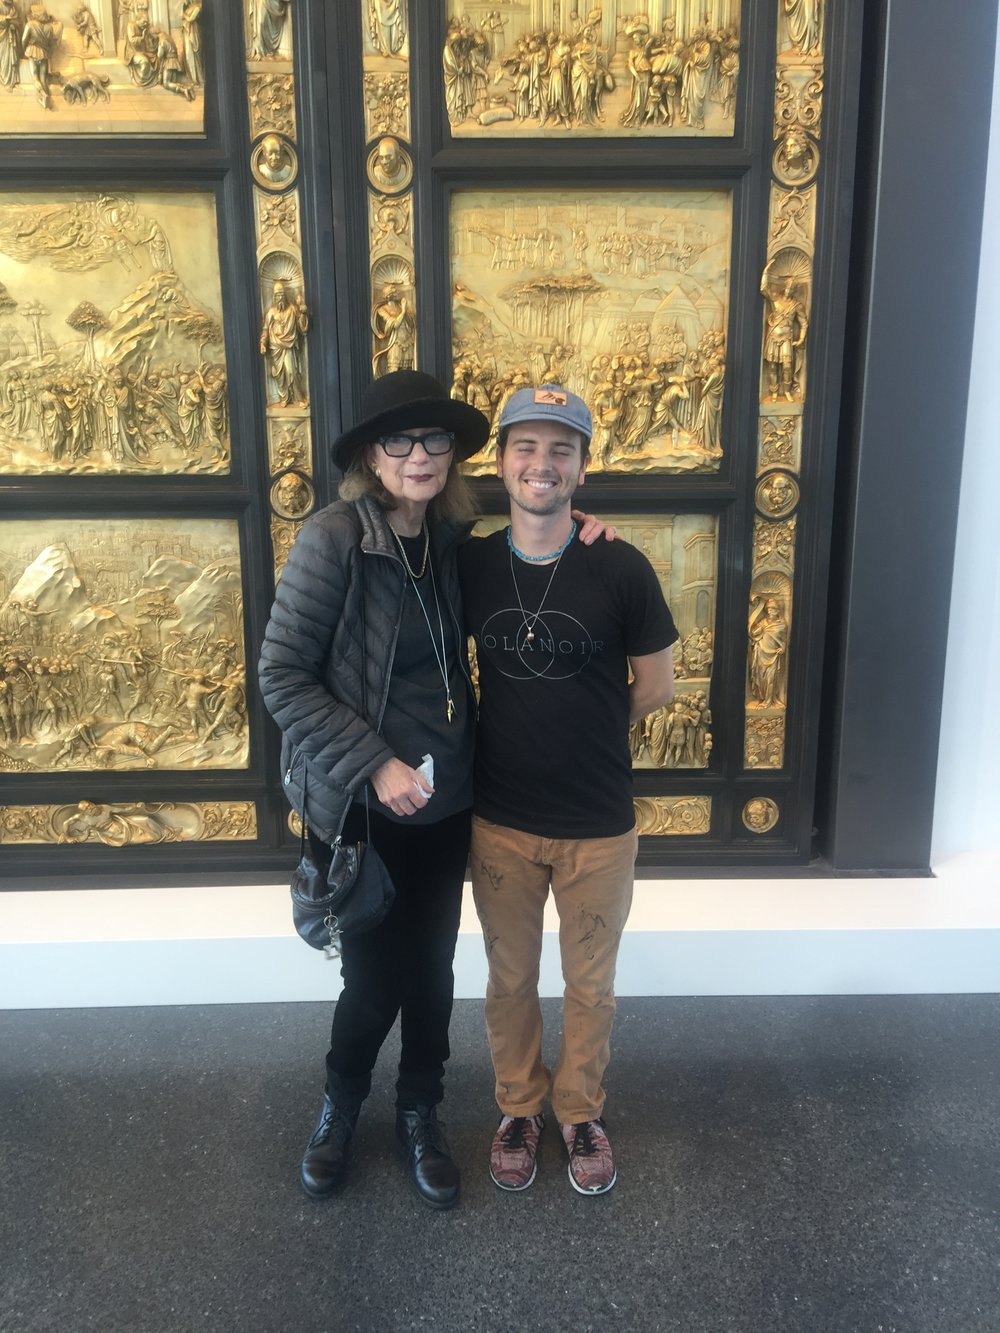 Mark Allen and Shea Gordon in front of The Golden Gates of Paradise at the Nelson Atkins Museum of Art